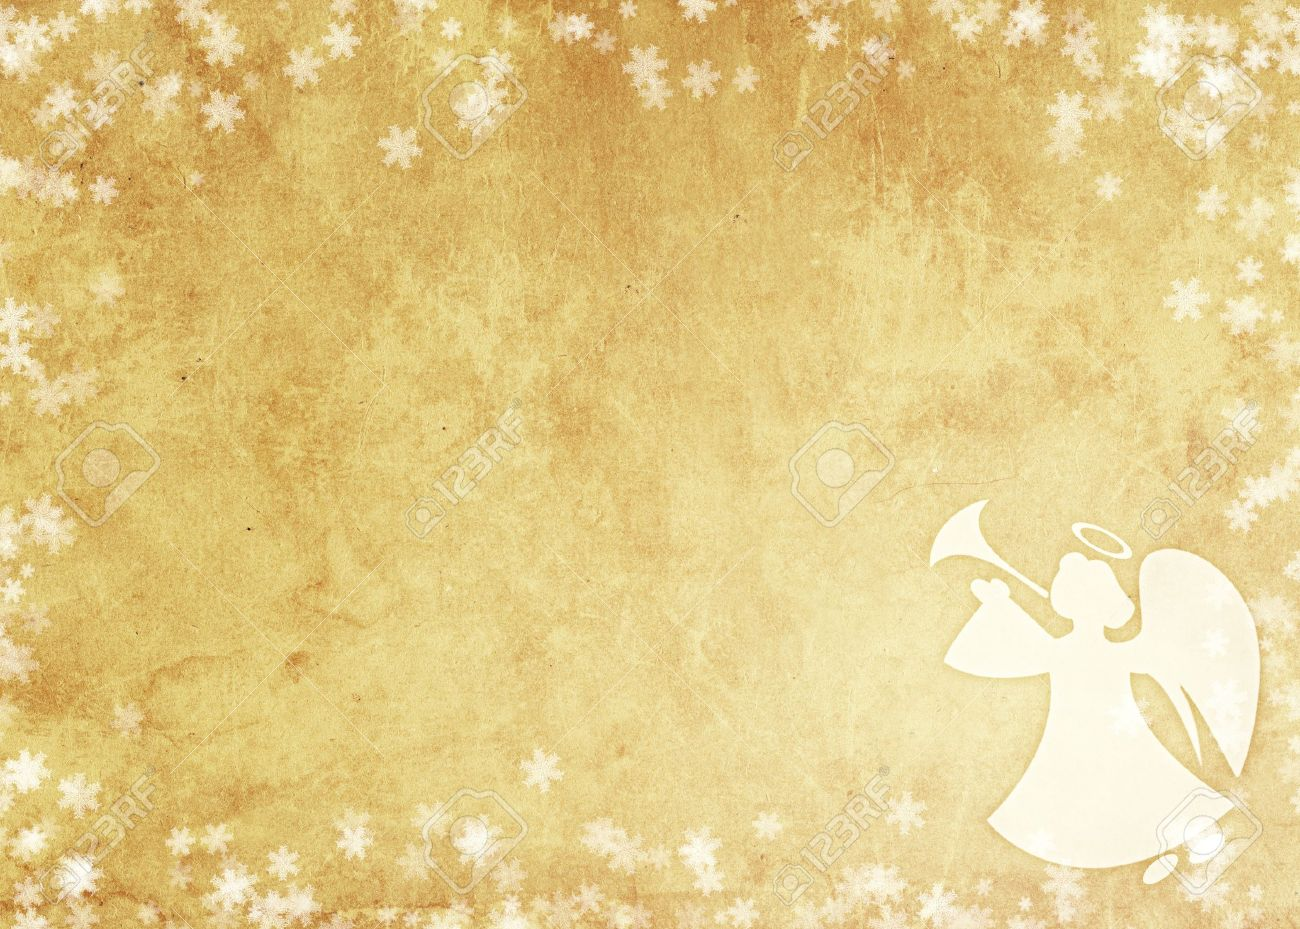 Angels Christmas Background.Christmas Grunge Background With Angel Paper Texture